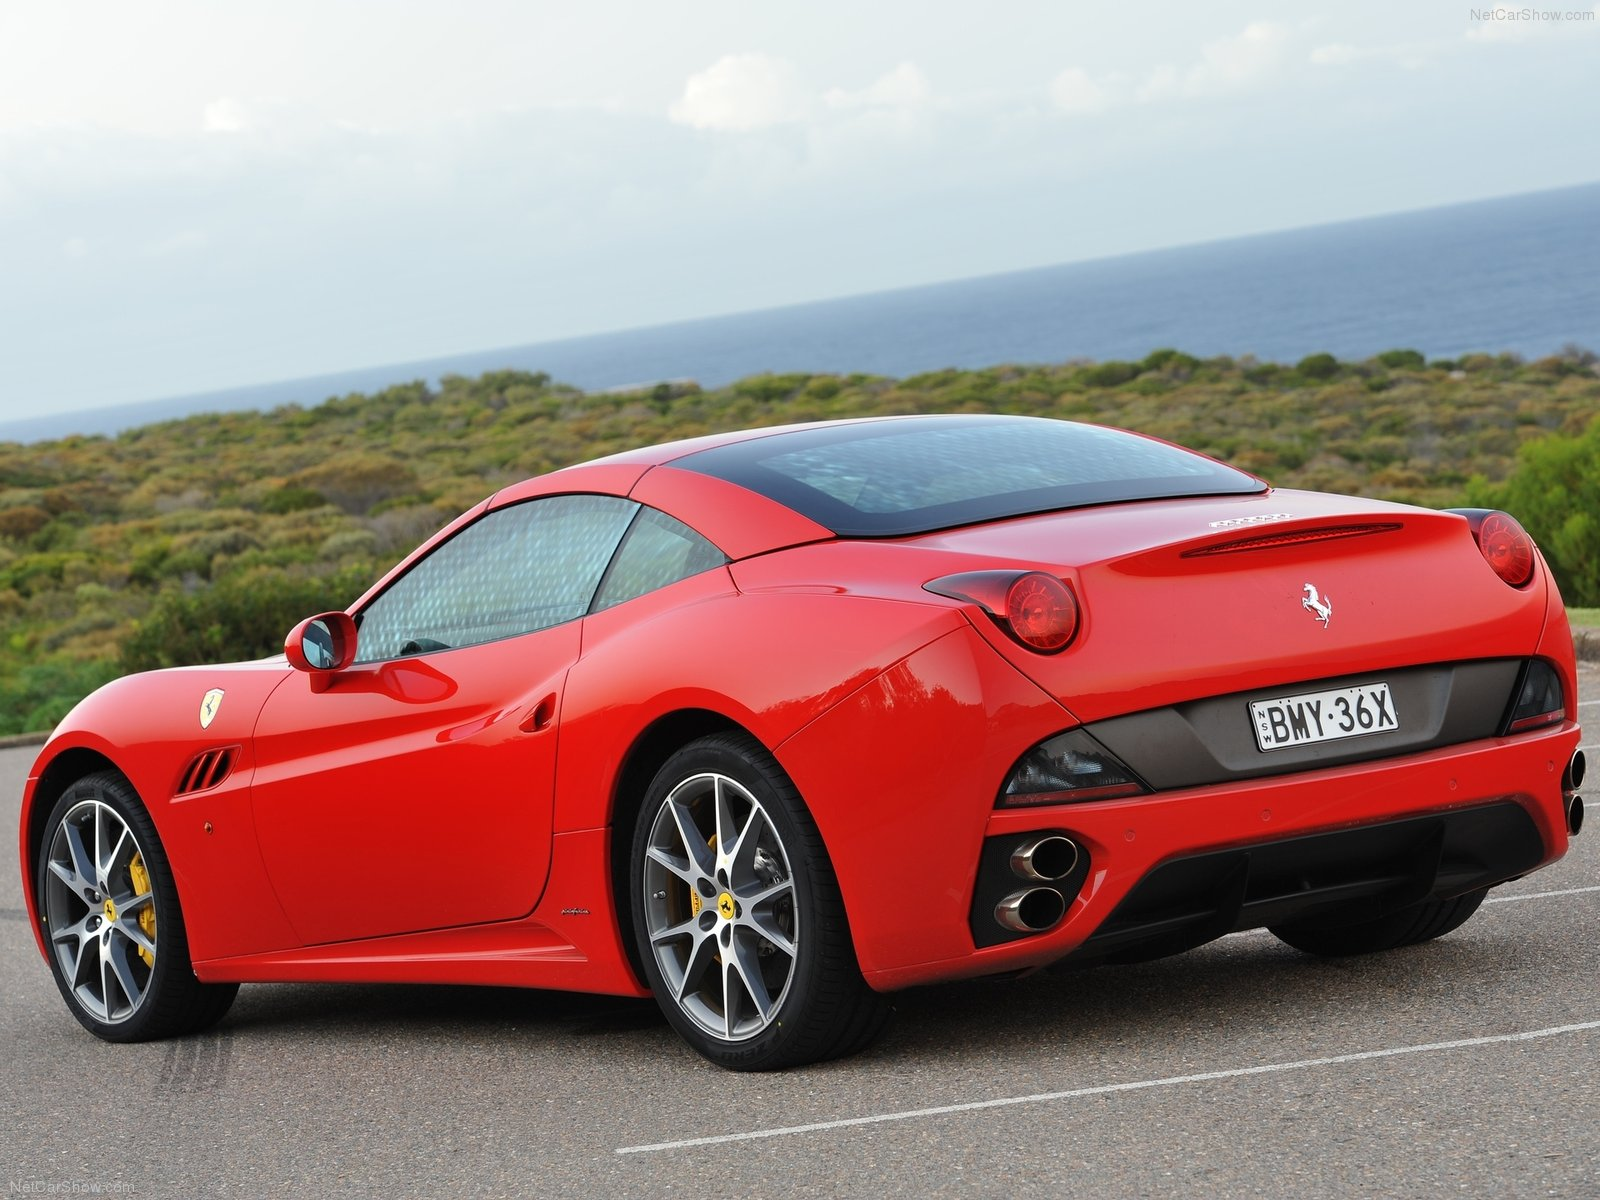 2009 Ferrari California #15